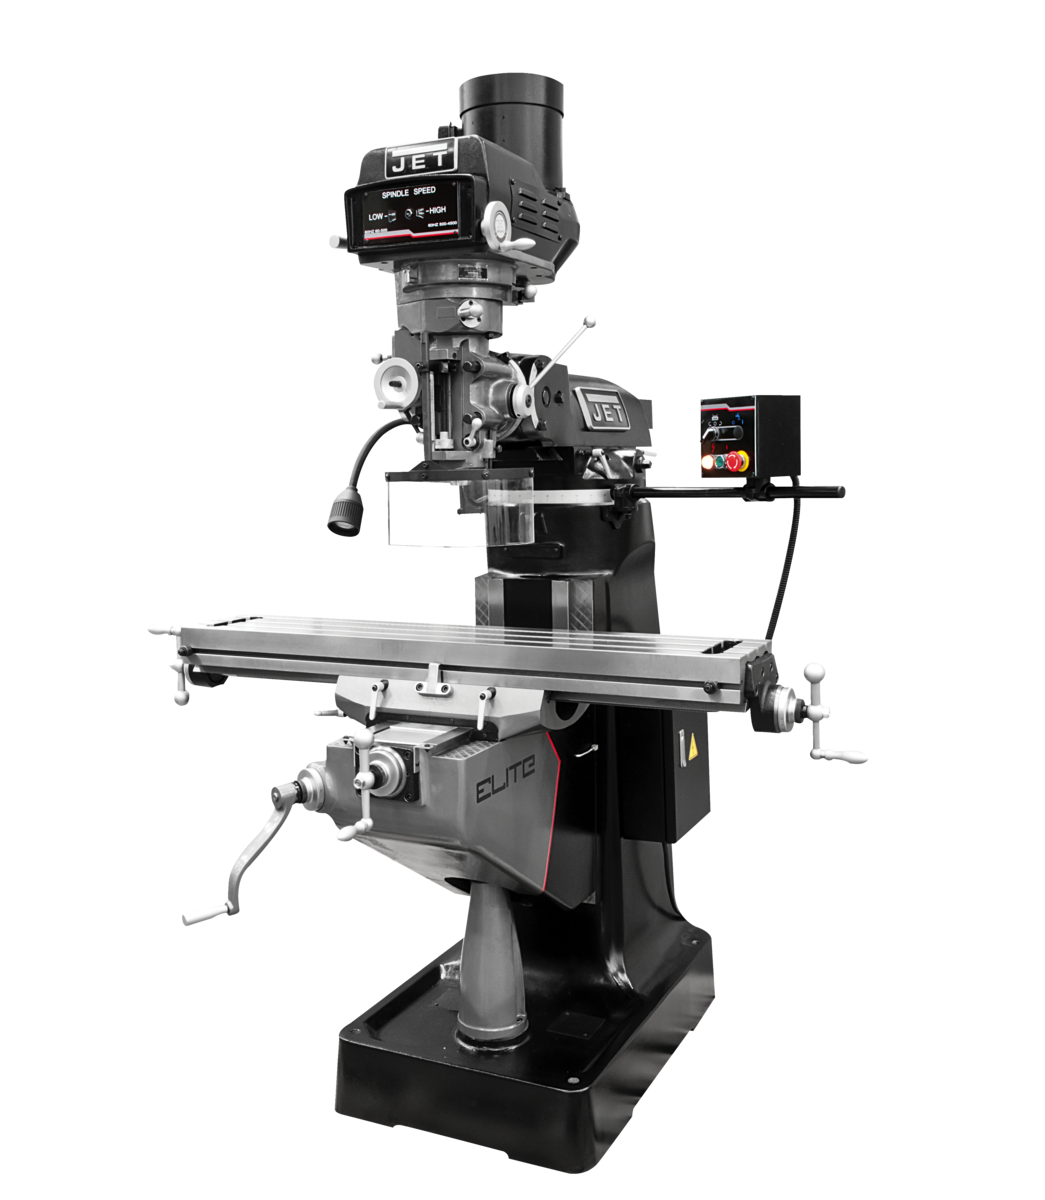 ETM-949 Mill with 2-Axis Newall DP700 DRO and Servo X-Axis Powerfeed